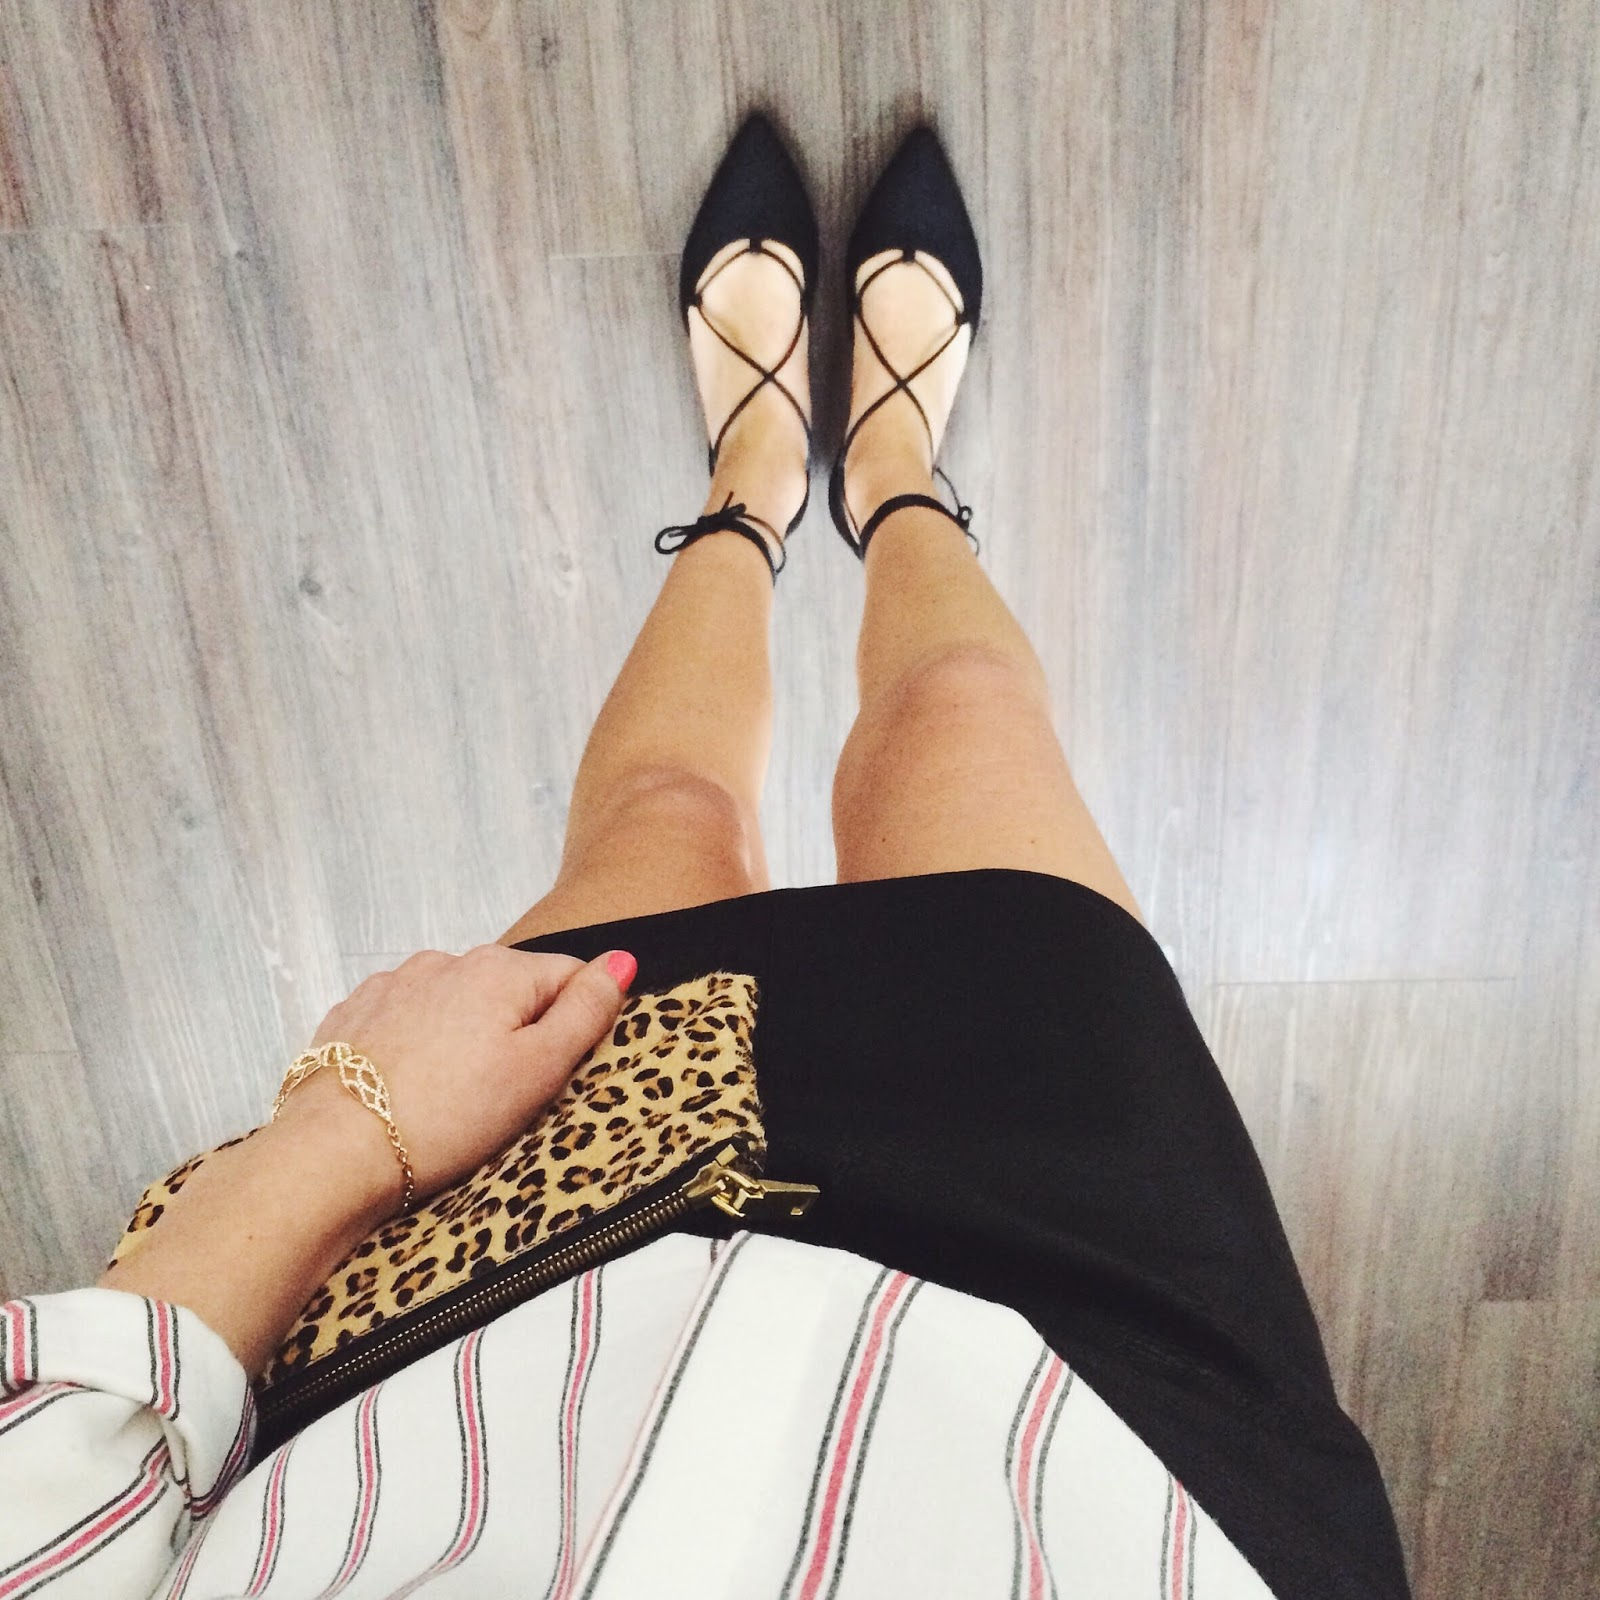 lace up flats, stuart weitzman shoes, stuart weitzman ballet flats, leather skirt, pinstriped shirt, carolina creba